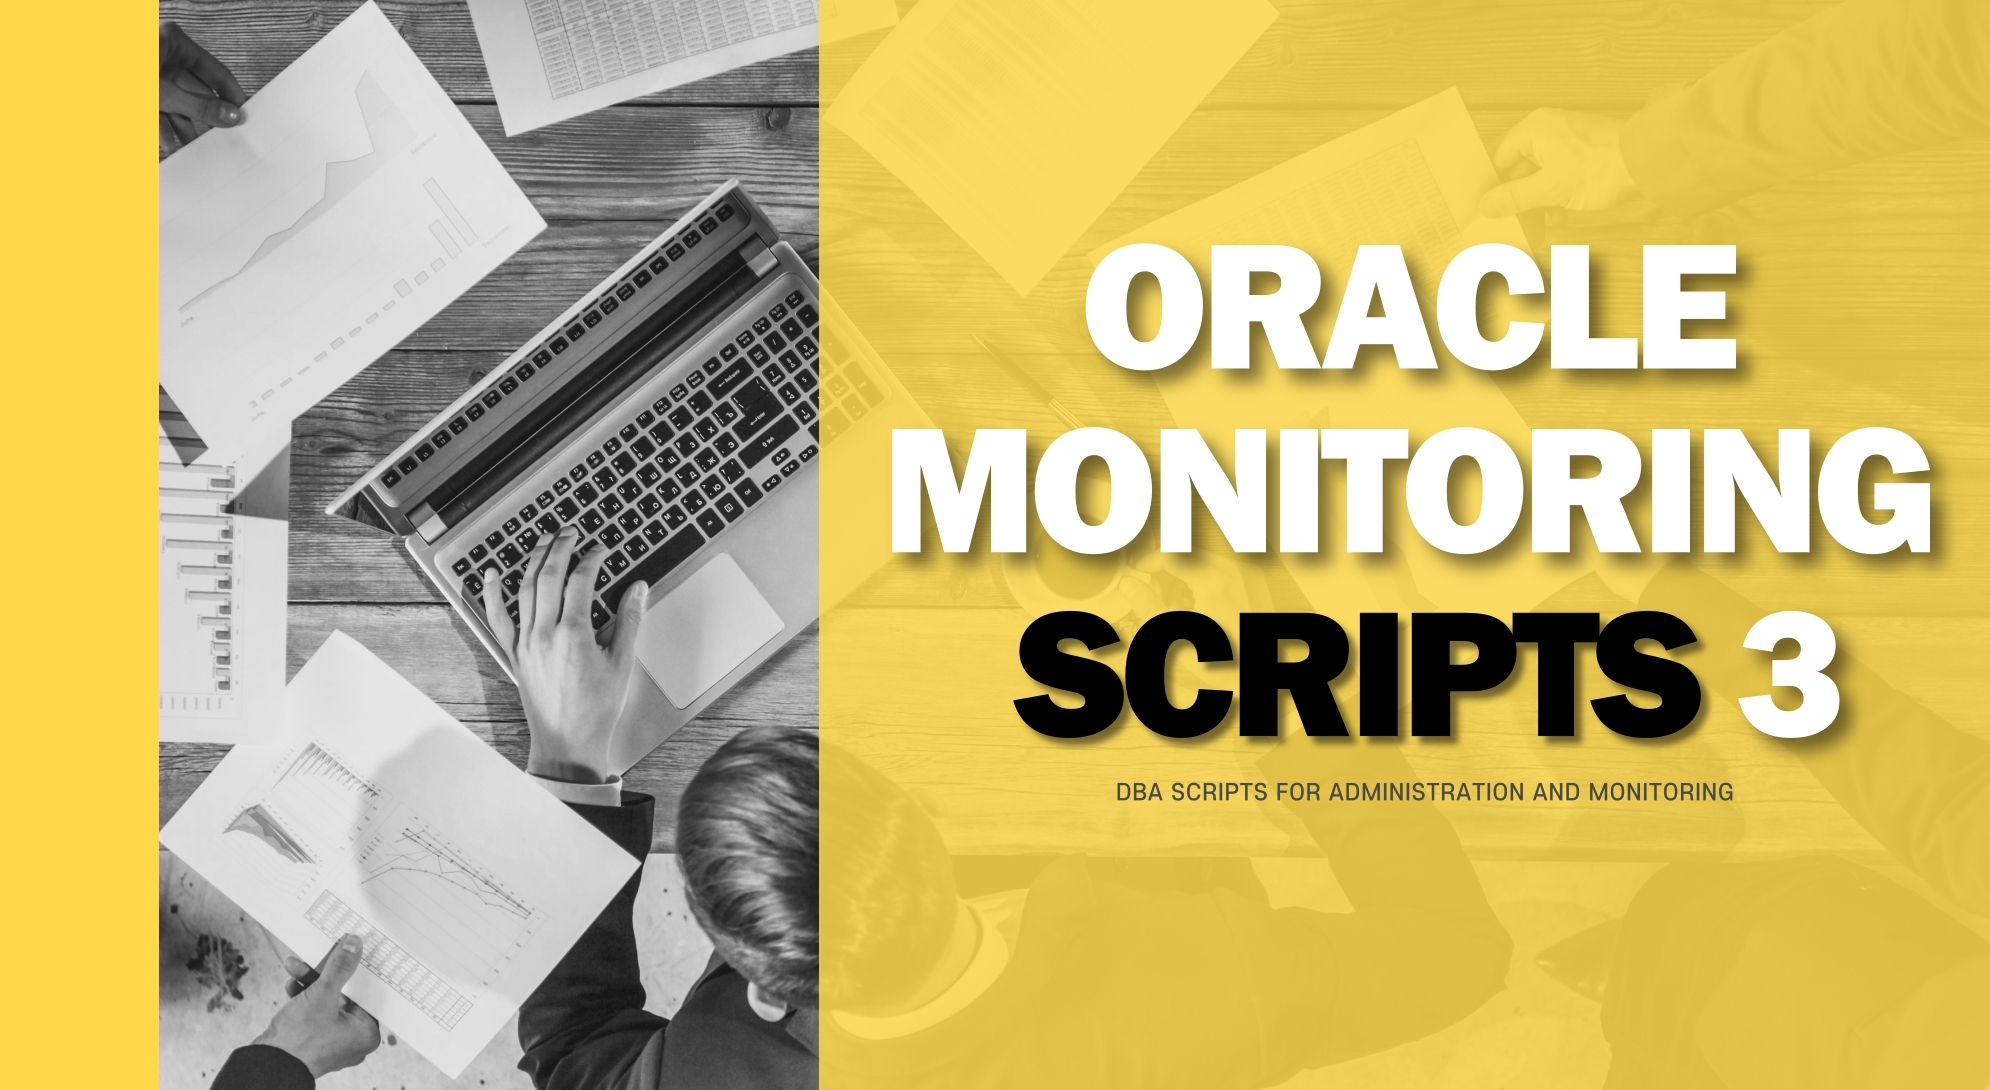 Oracle Monitoring Scripts 3